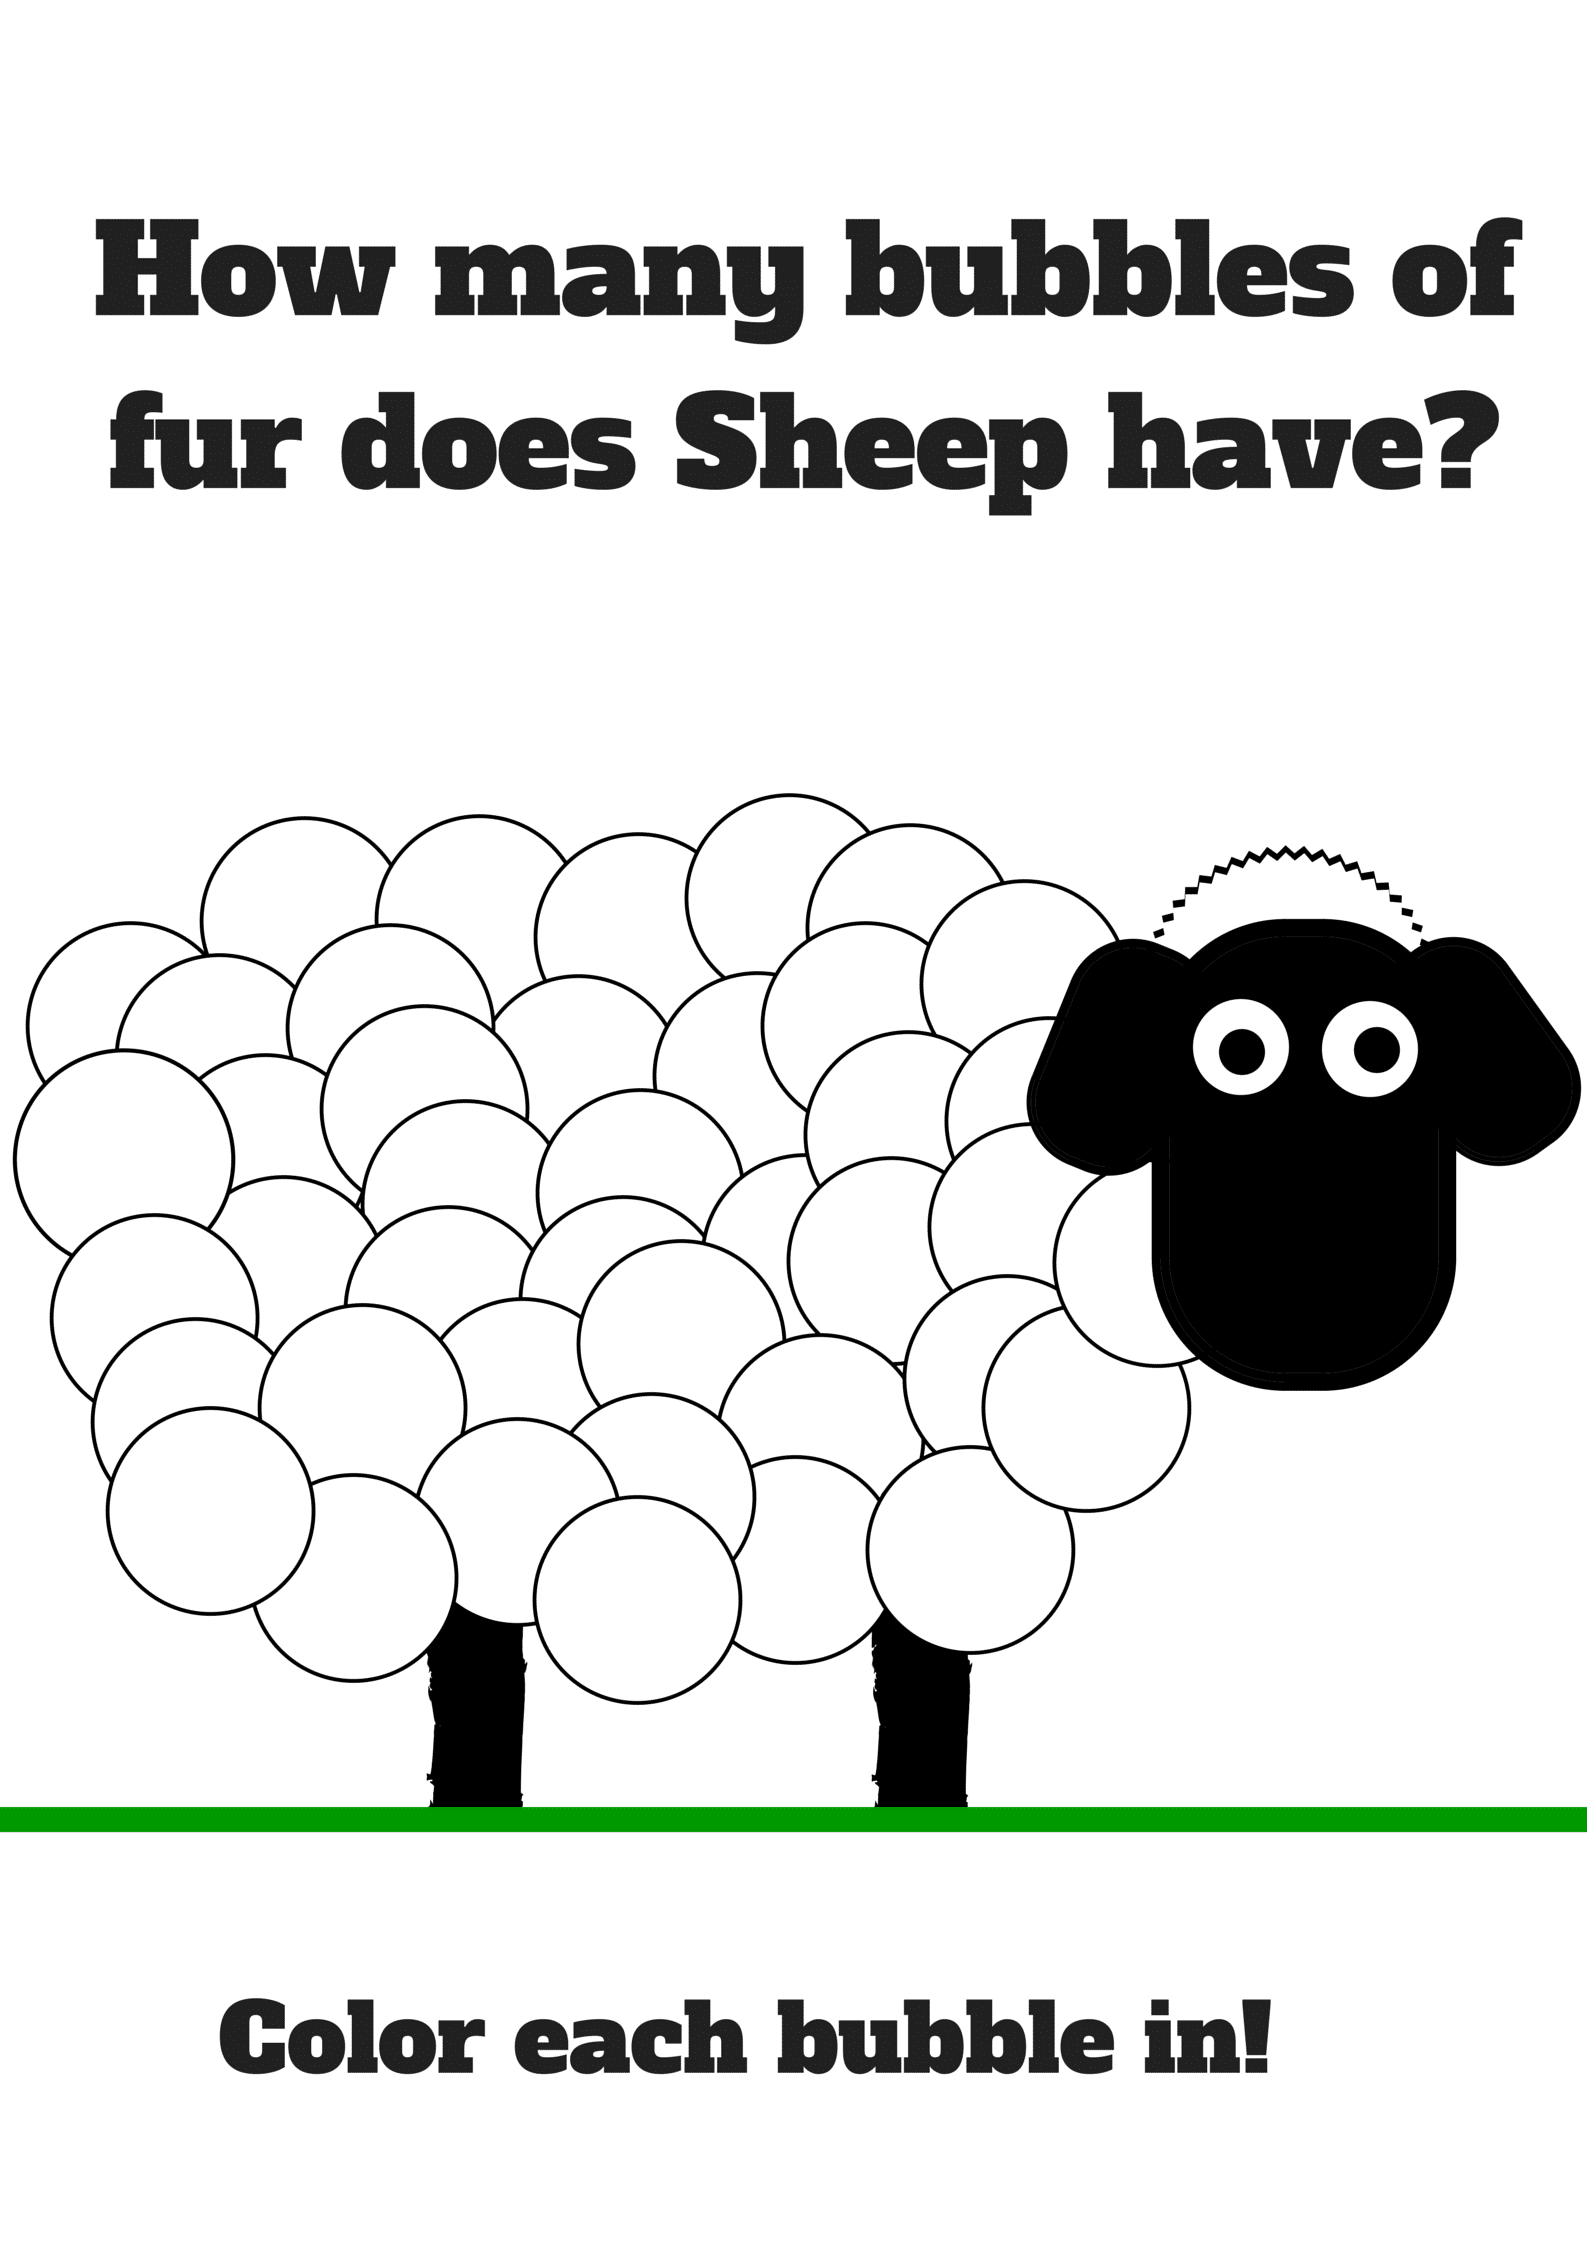 Free Shaun the Sheep Printable How many bubbles of fur does Sheep have-